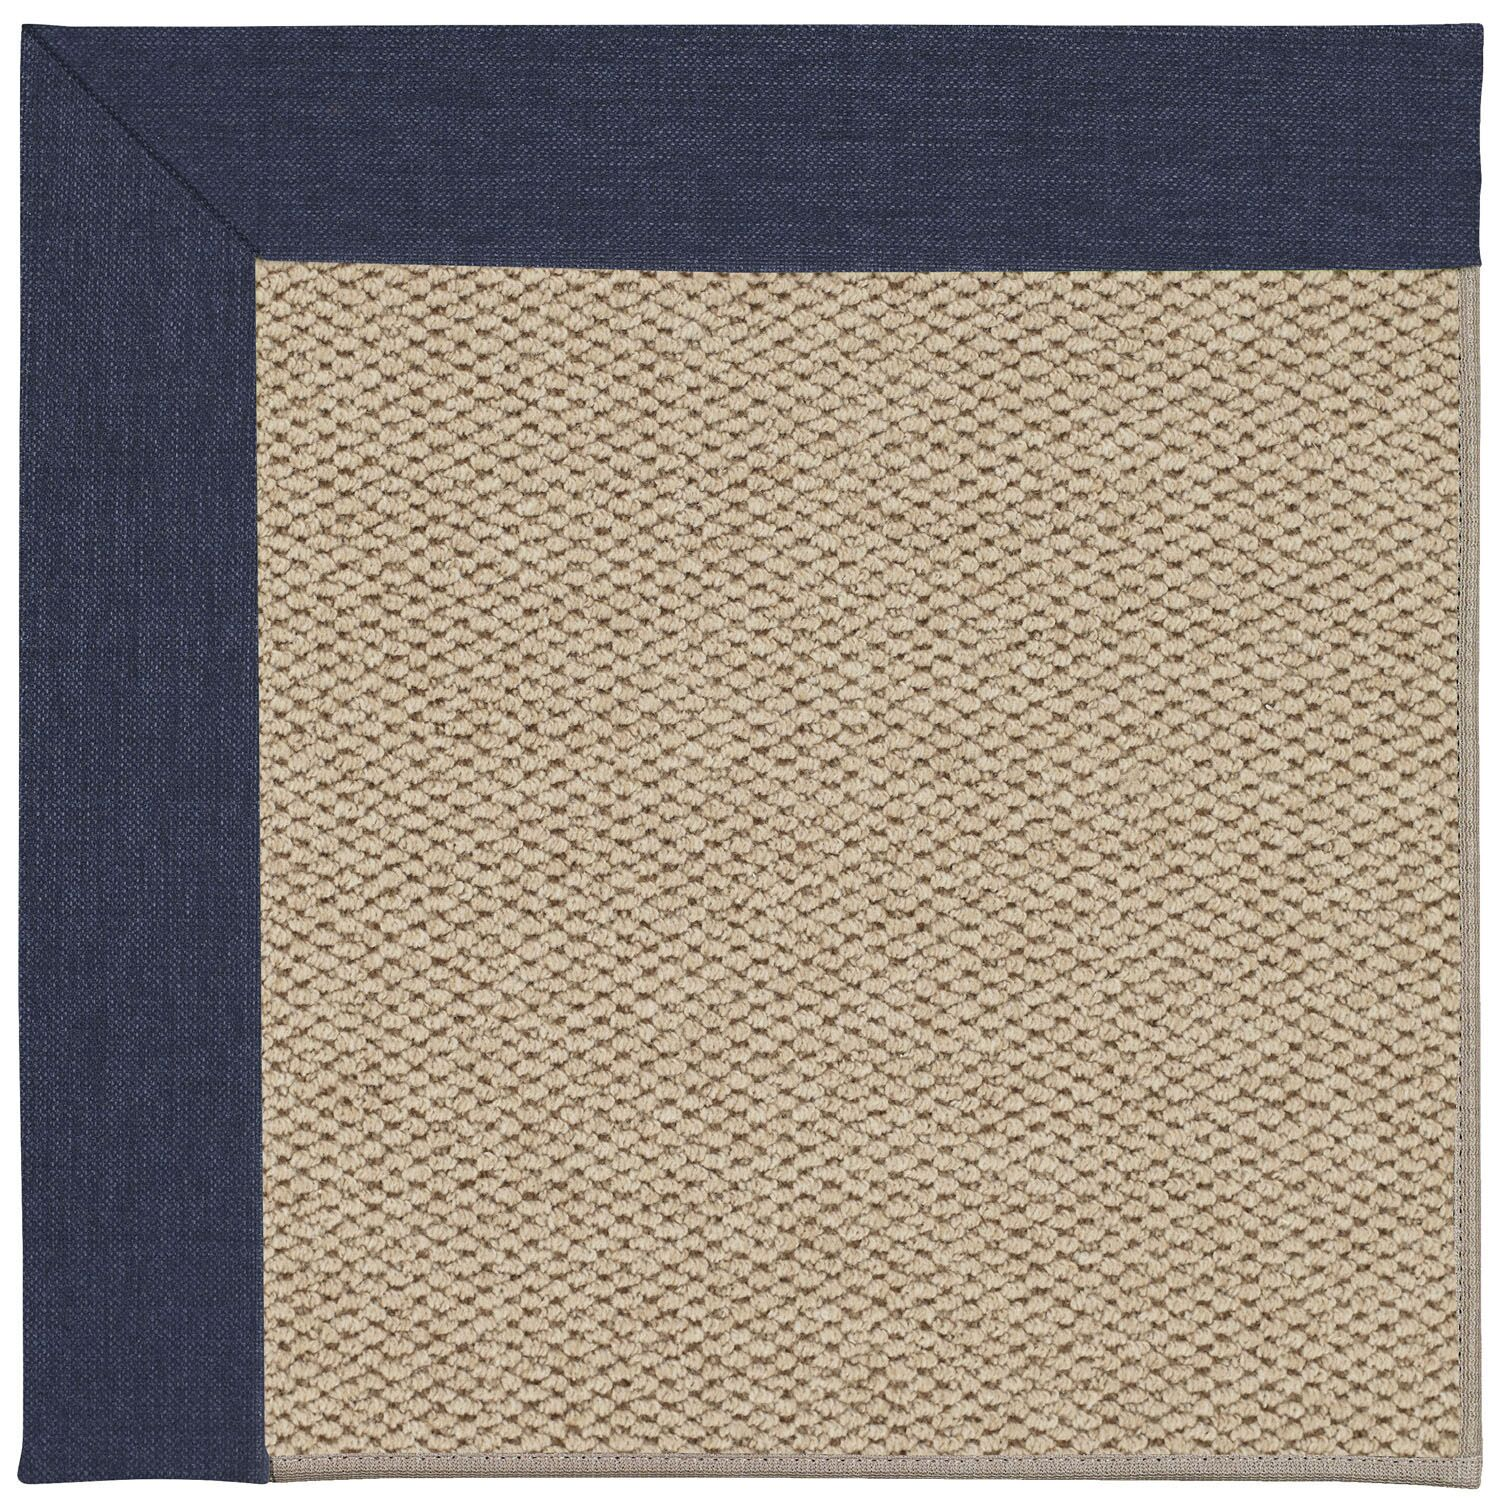 Barrett Champagne Machine Tufted Navy/Beige Area Rug Rug Size: Round 12' x 12'